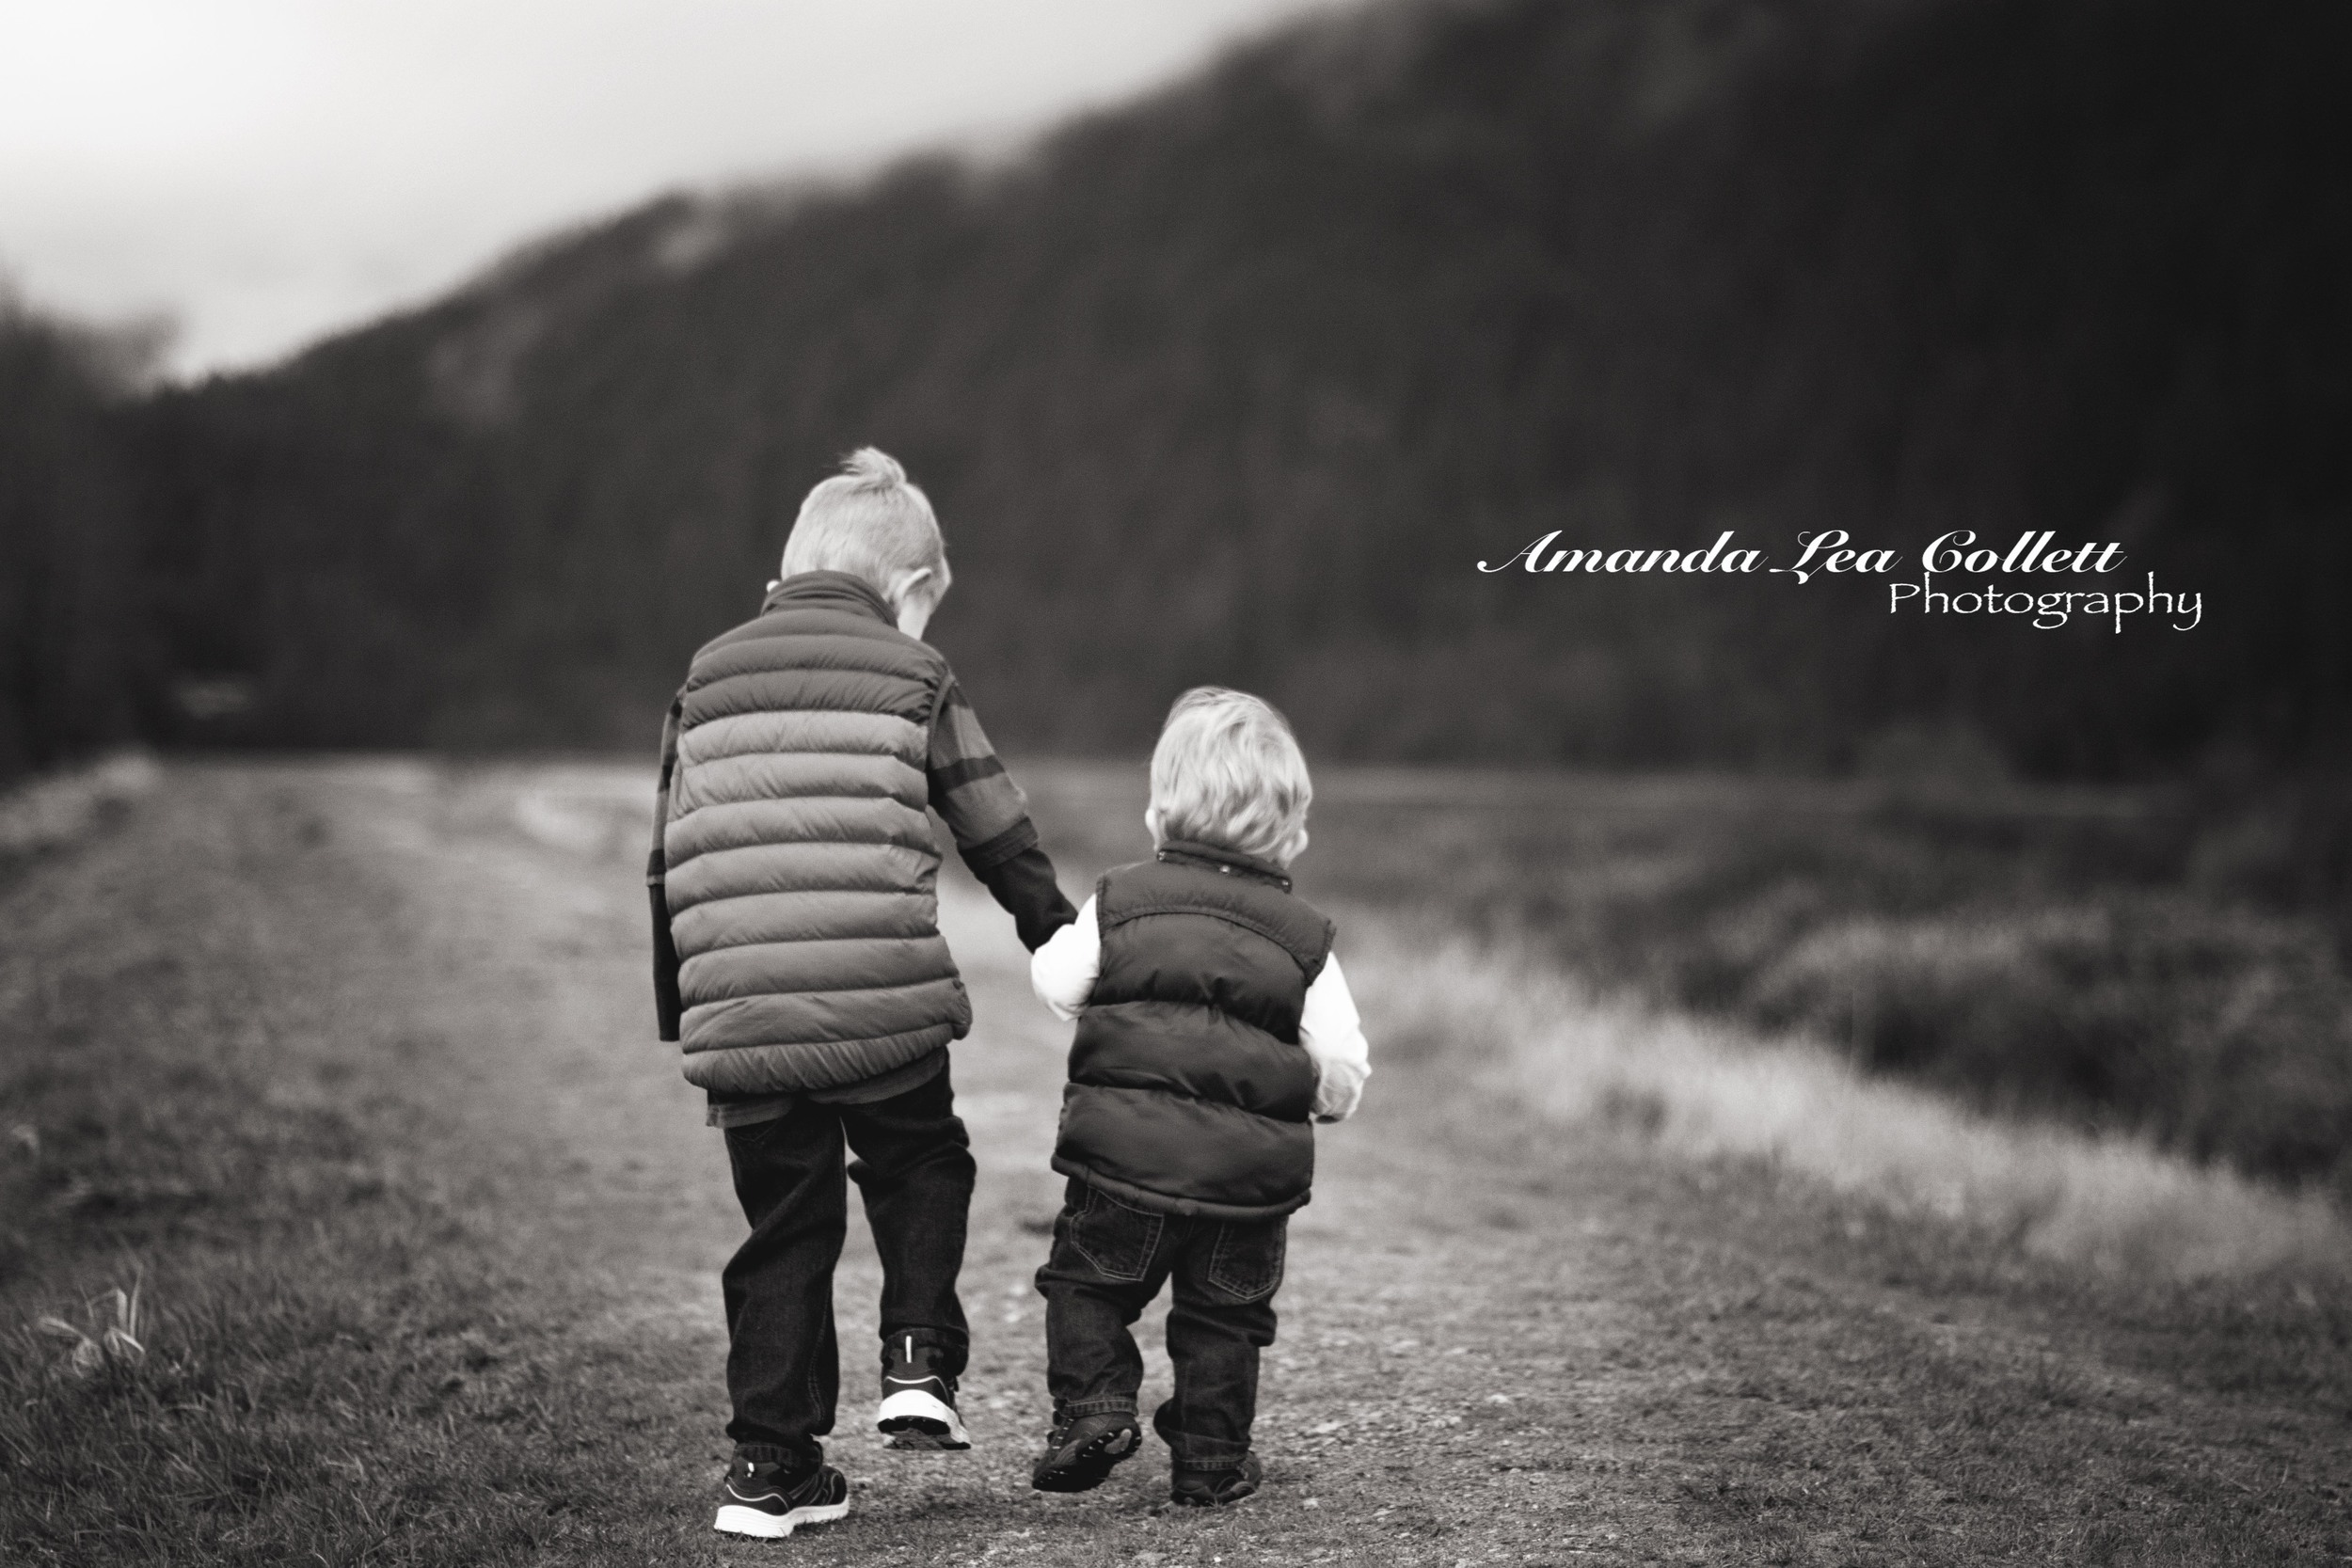 I love the black and white photos here, just shows a bit more depth to the simple fact there is nothing like brotherly love. Thanks for checking these images out.